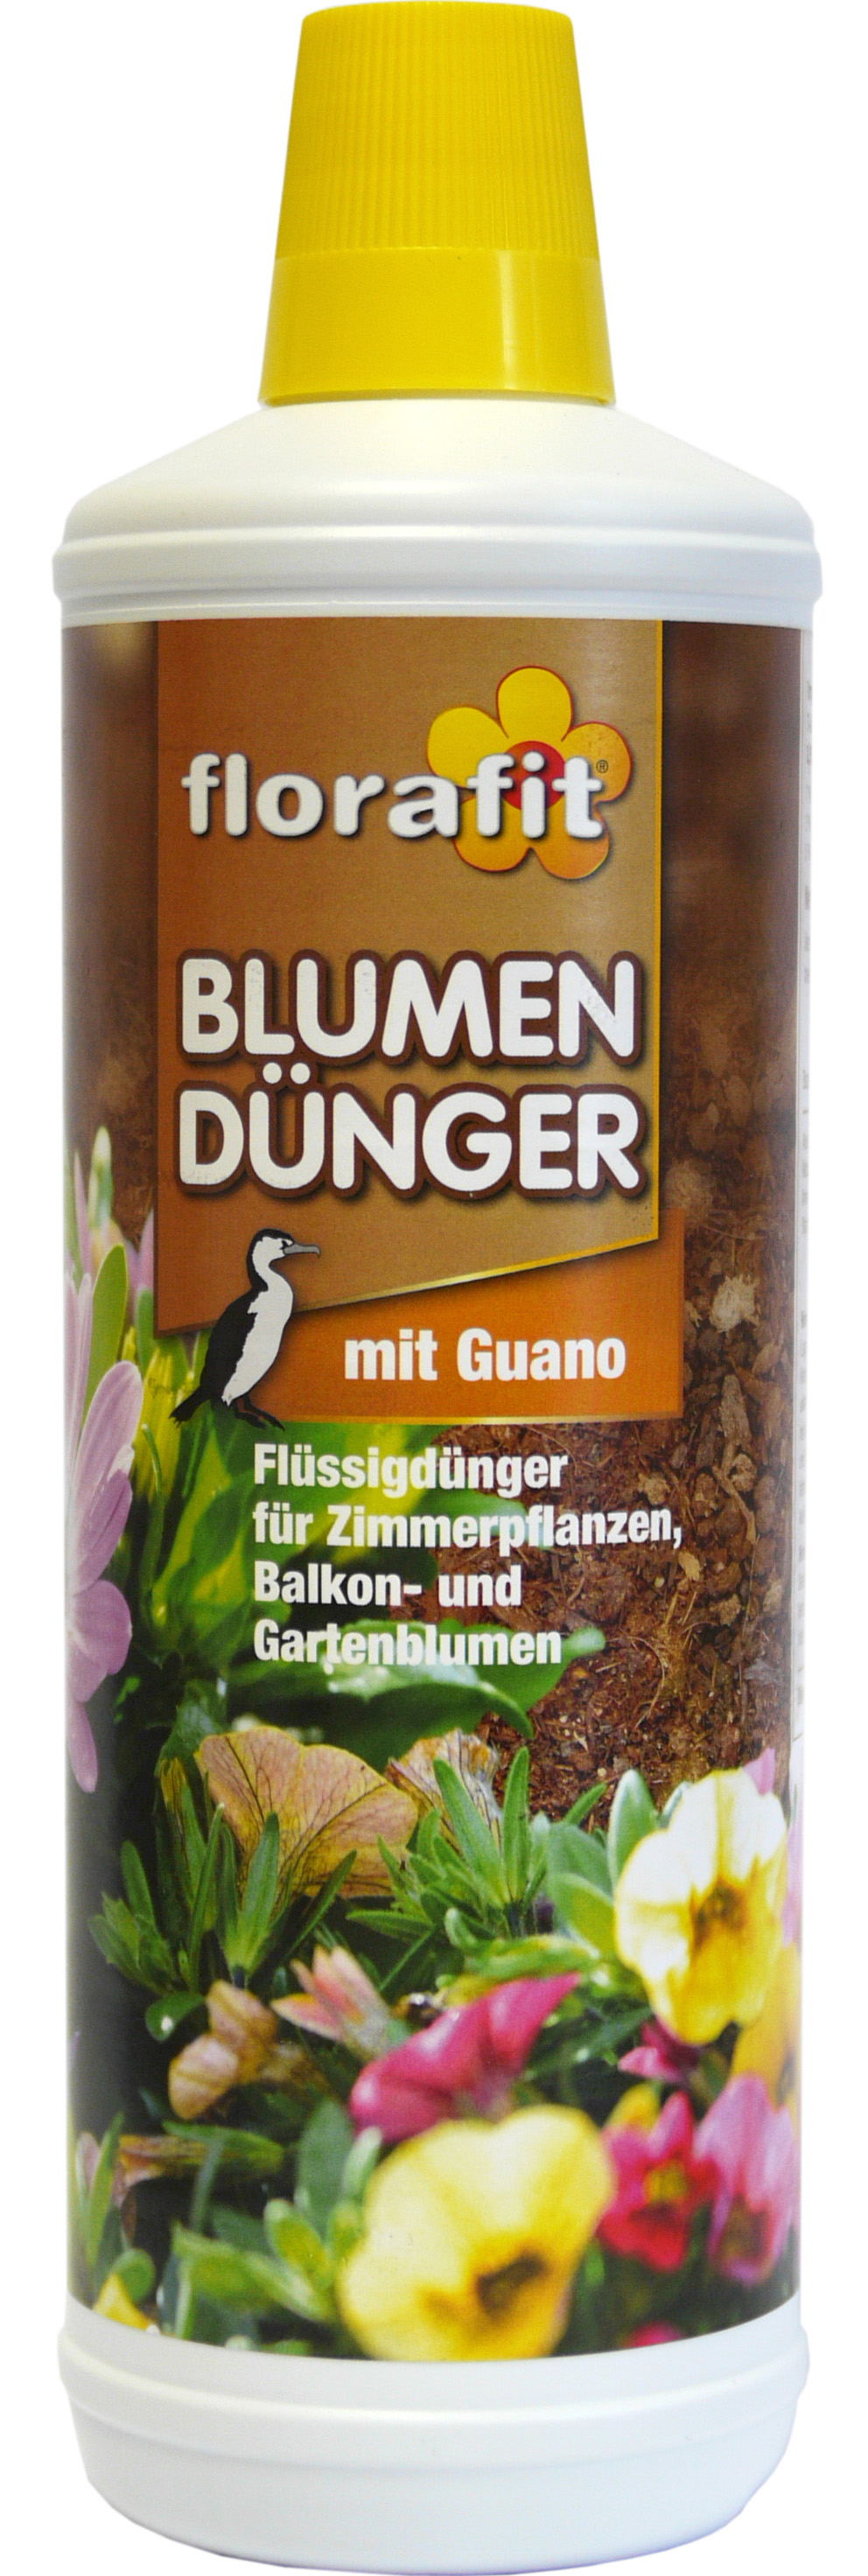 02210 - flower fertilizer with guano 1000 ml